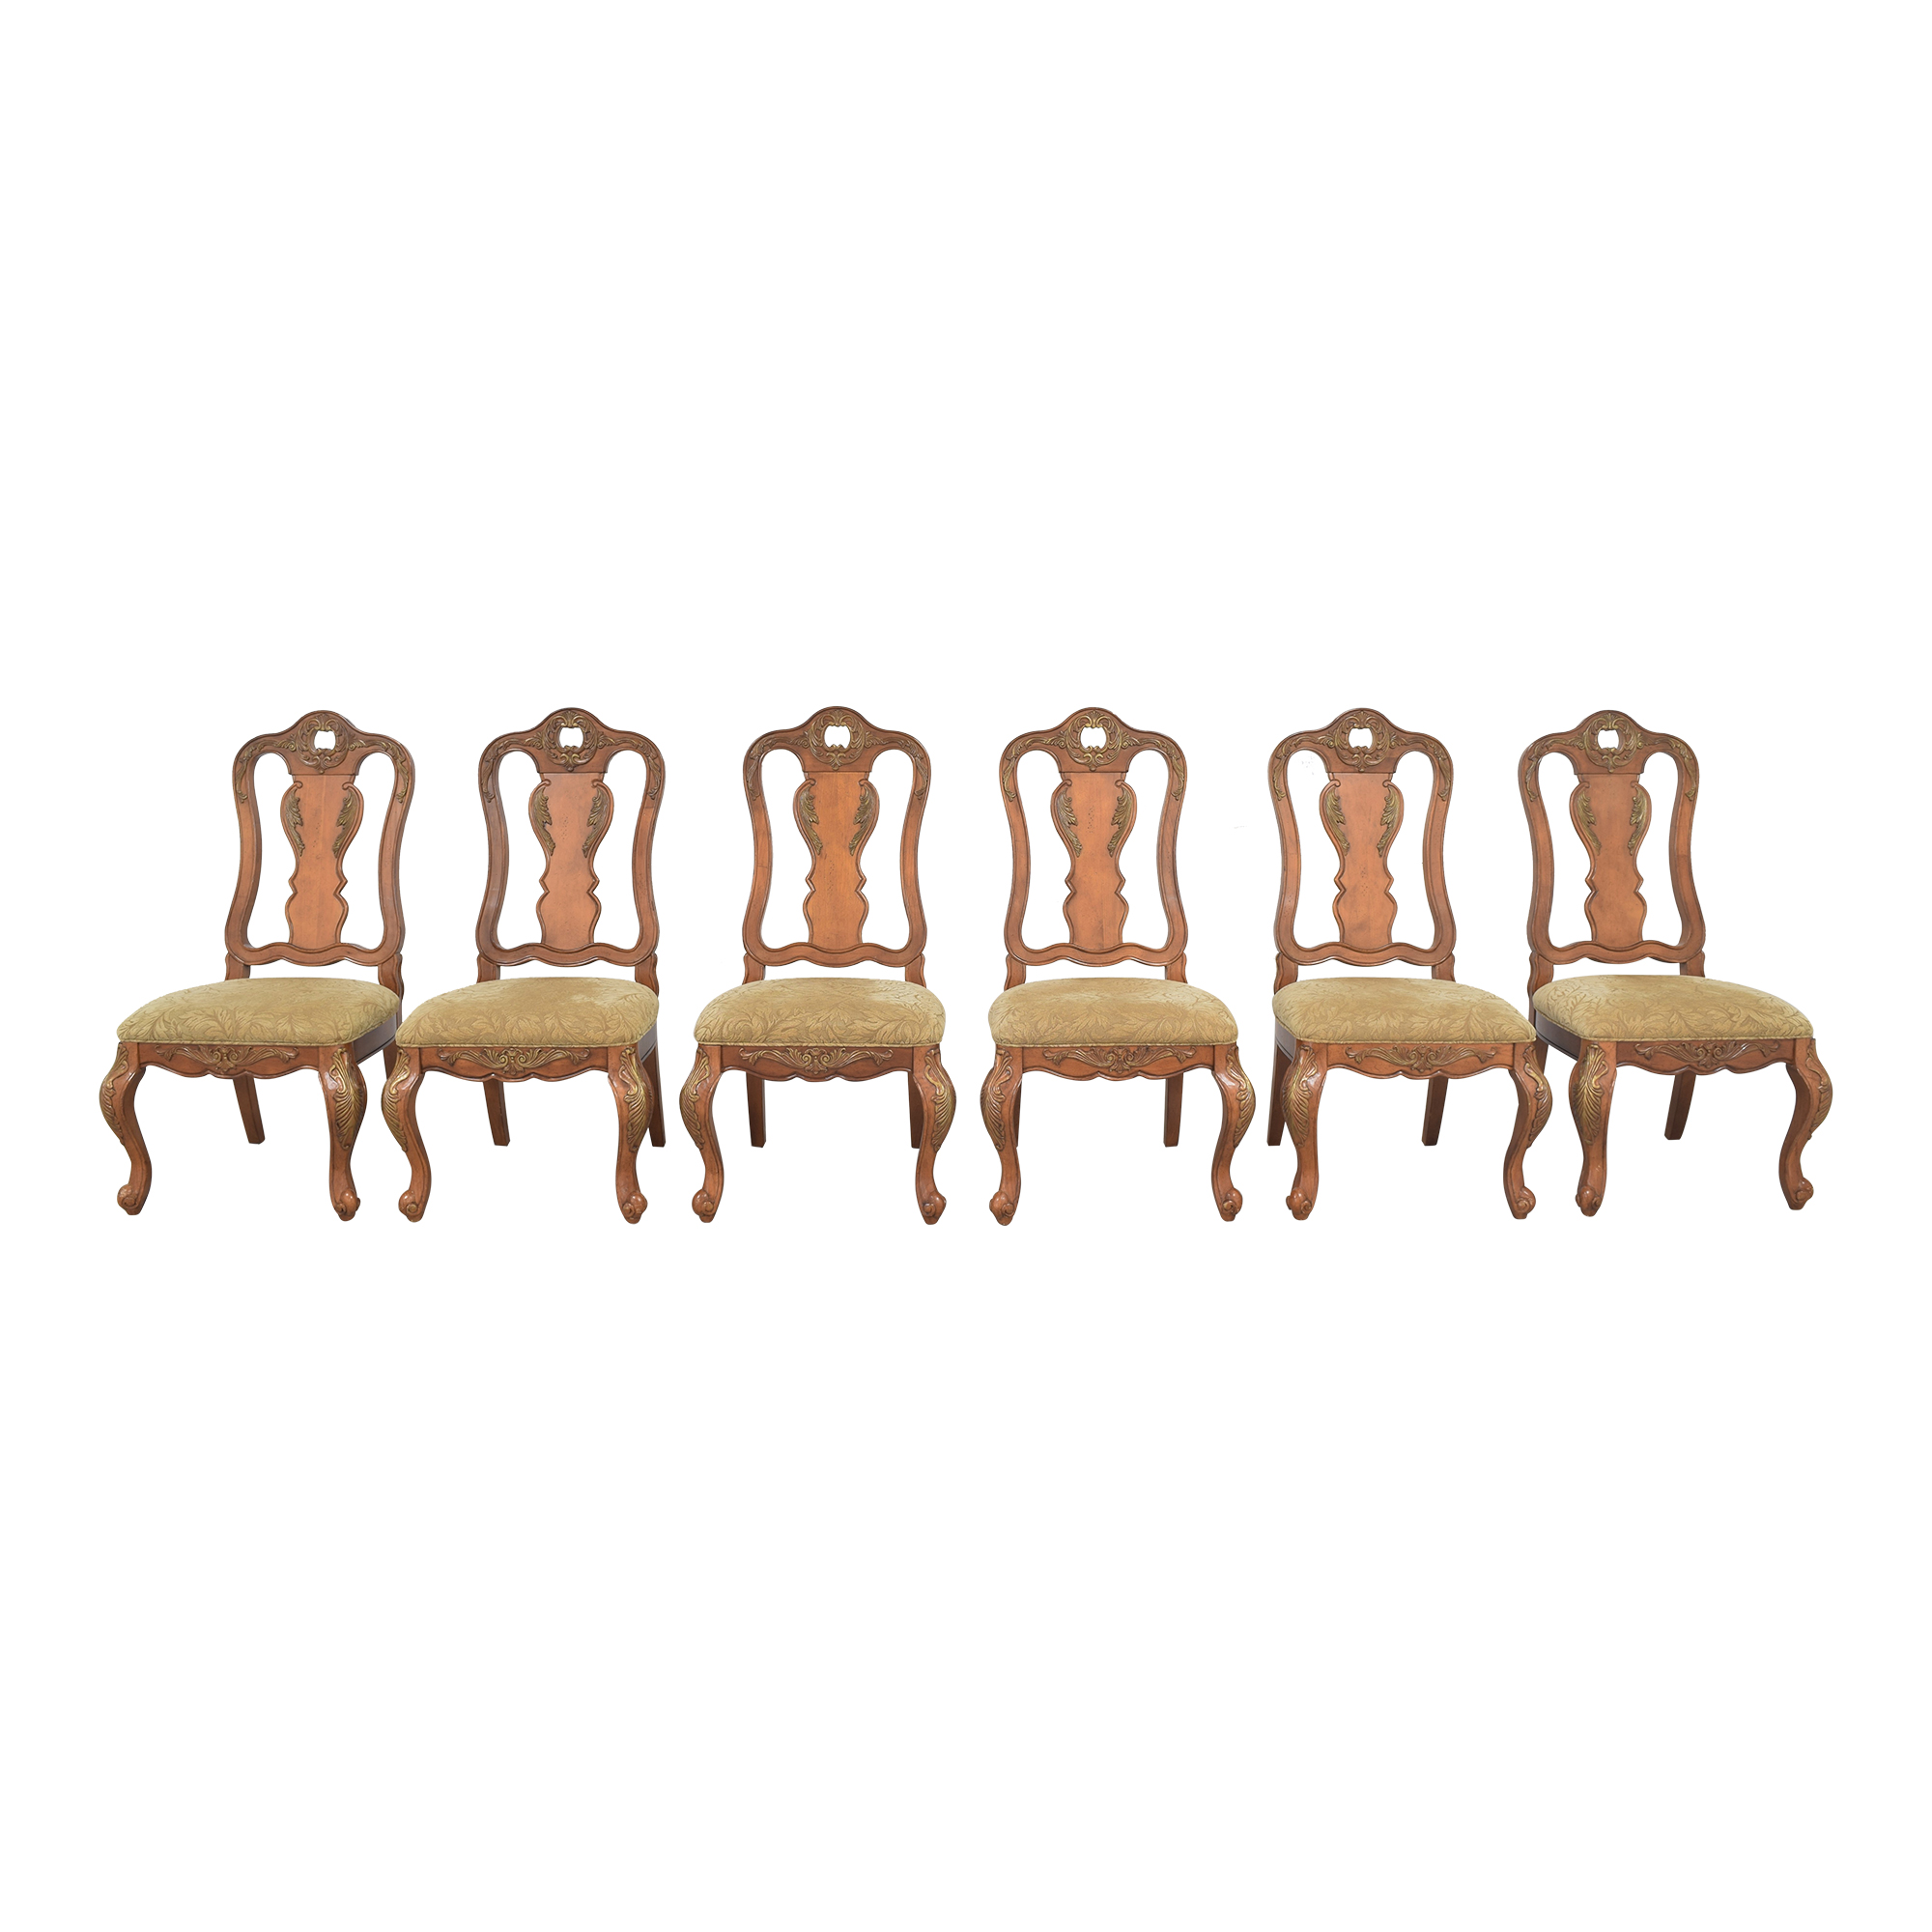 buy Raymour & Flanigan Legacy Classic Dining Chairs Raymour & Flanigan Dining Chairs